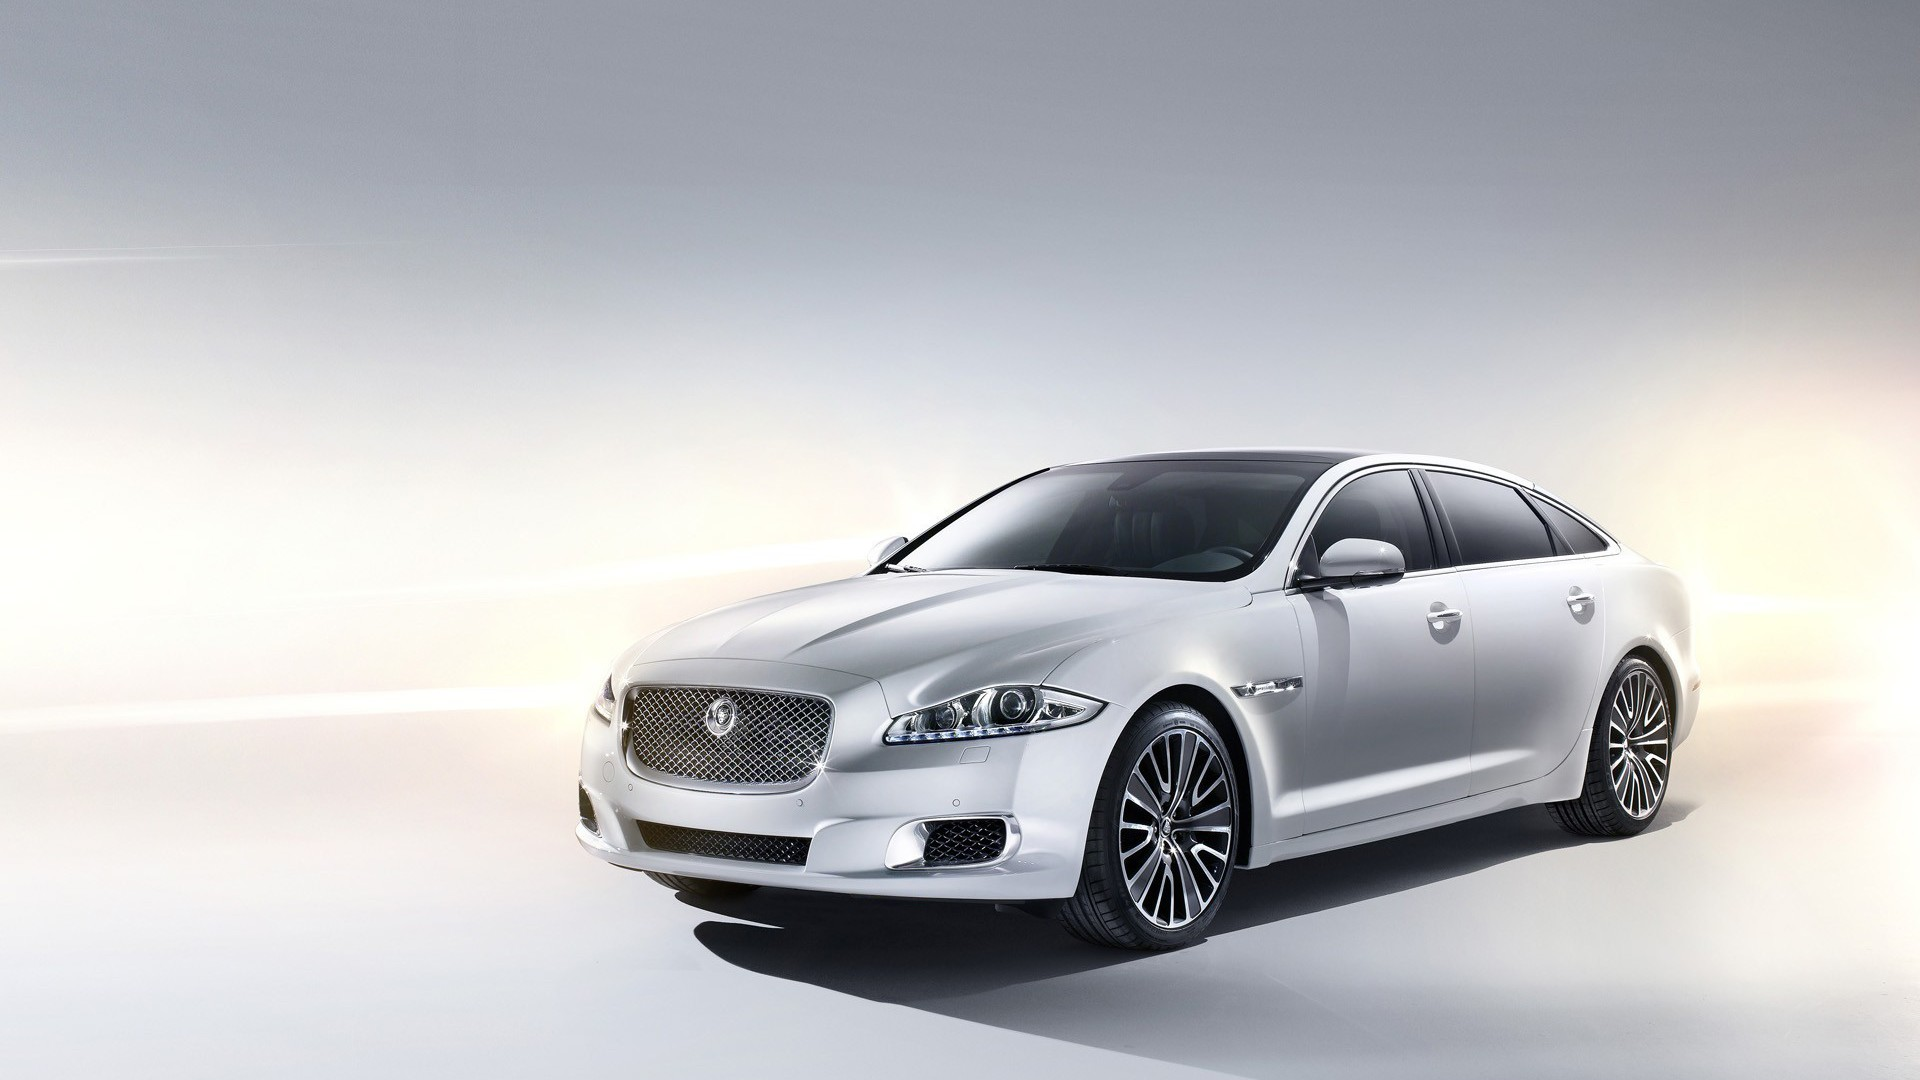 Jaguar Xj Cars Studio Supercars Ultimate Wallpaper Allwallpaper In